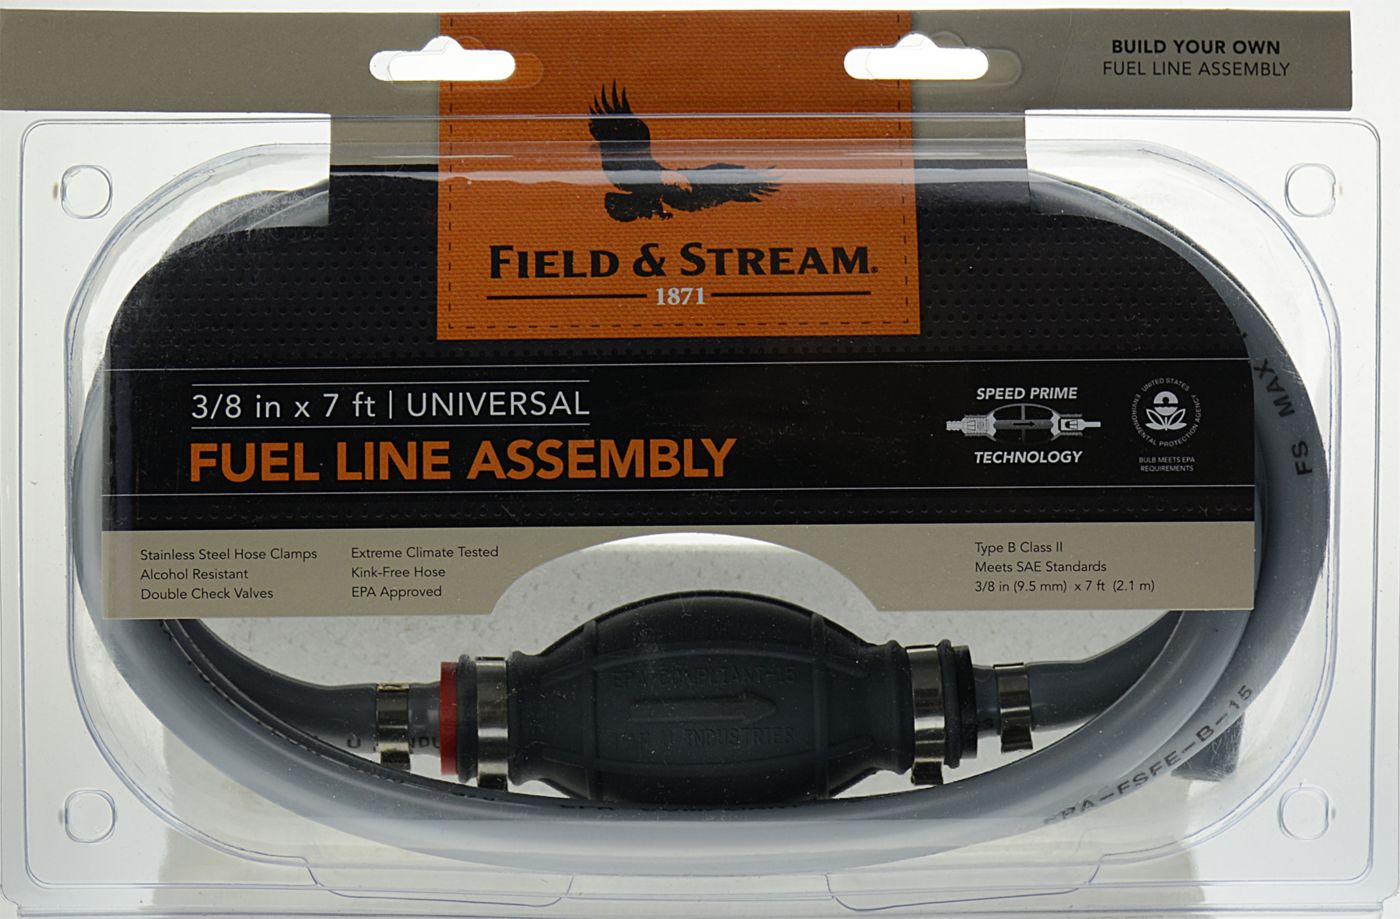 Field & Stream Fuel Line Assembly